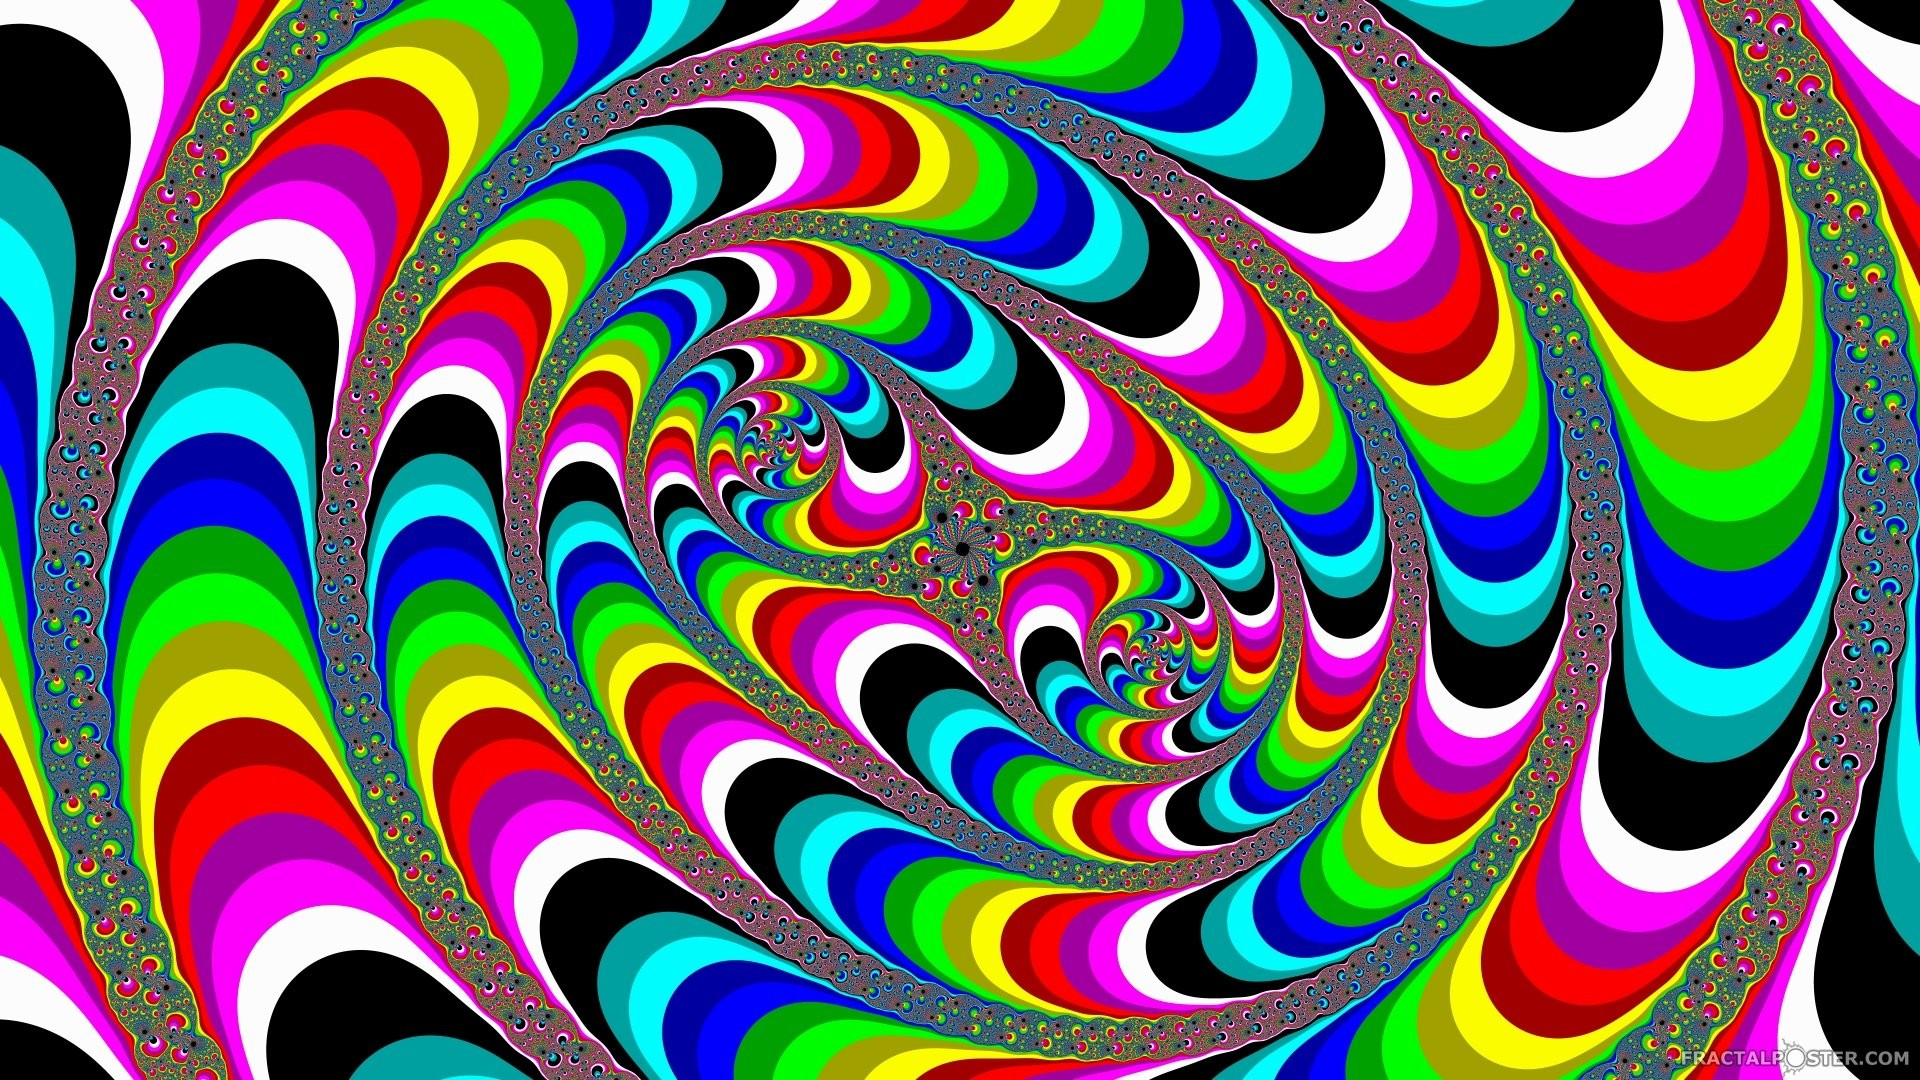 1920x1080 Psychedelic-and-Trippy-Backgrounds-for-your-desktop-wallpaper-wp0010685